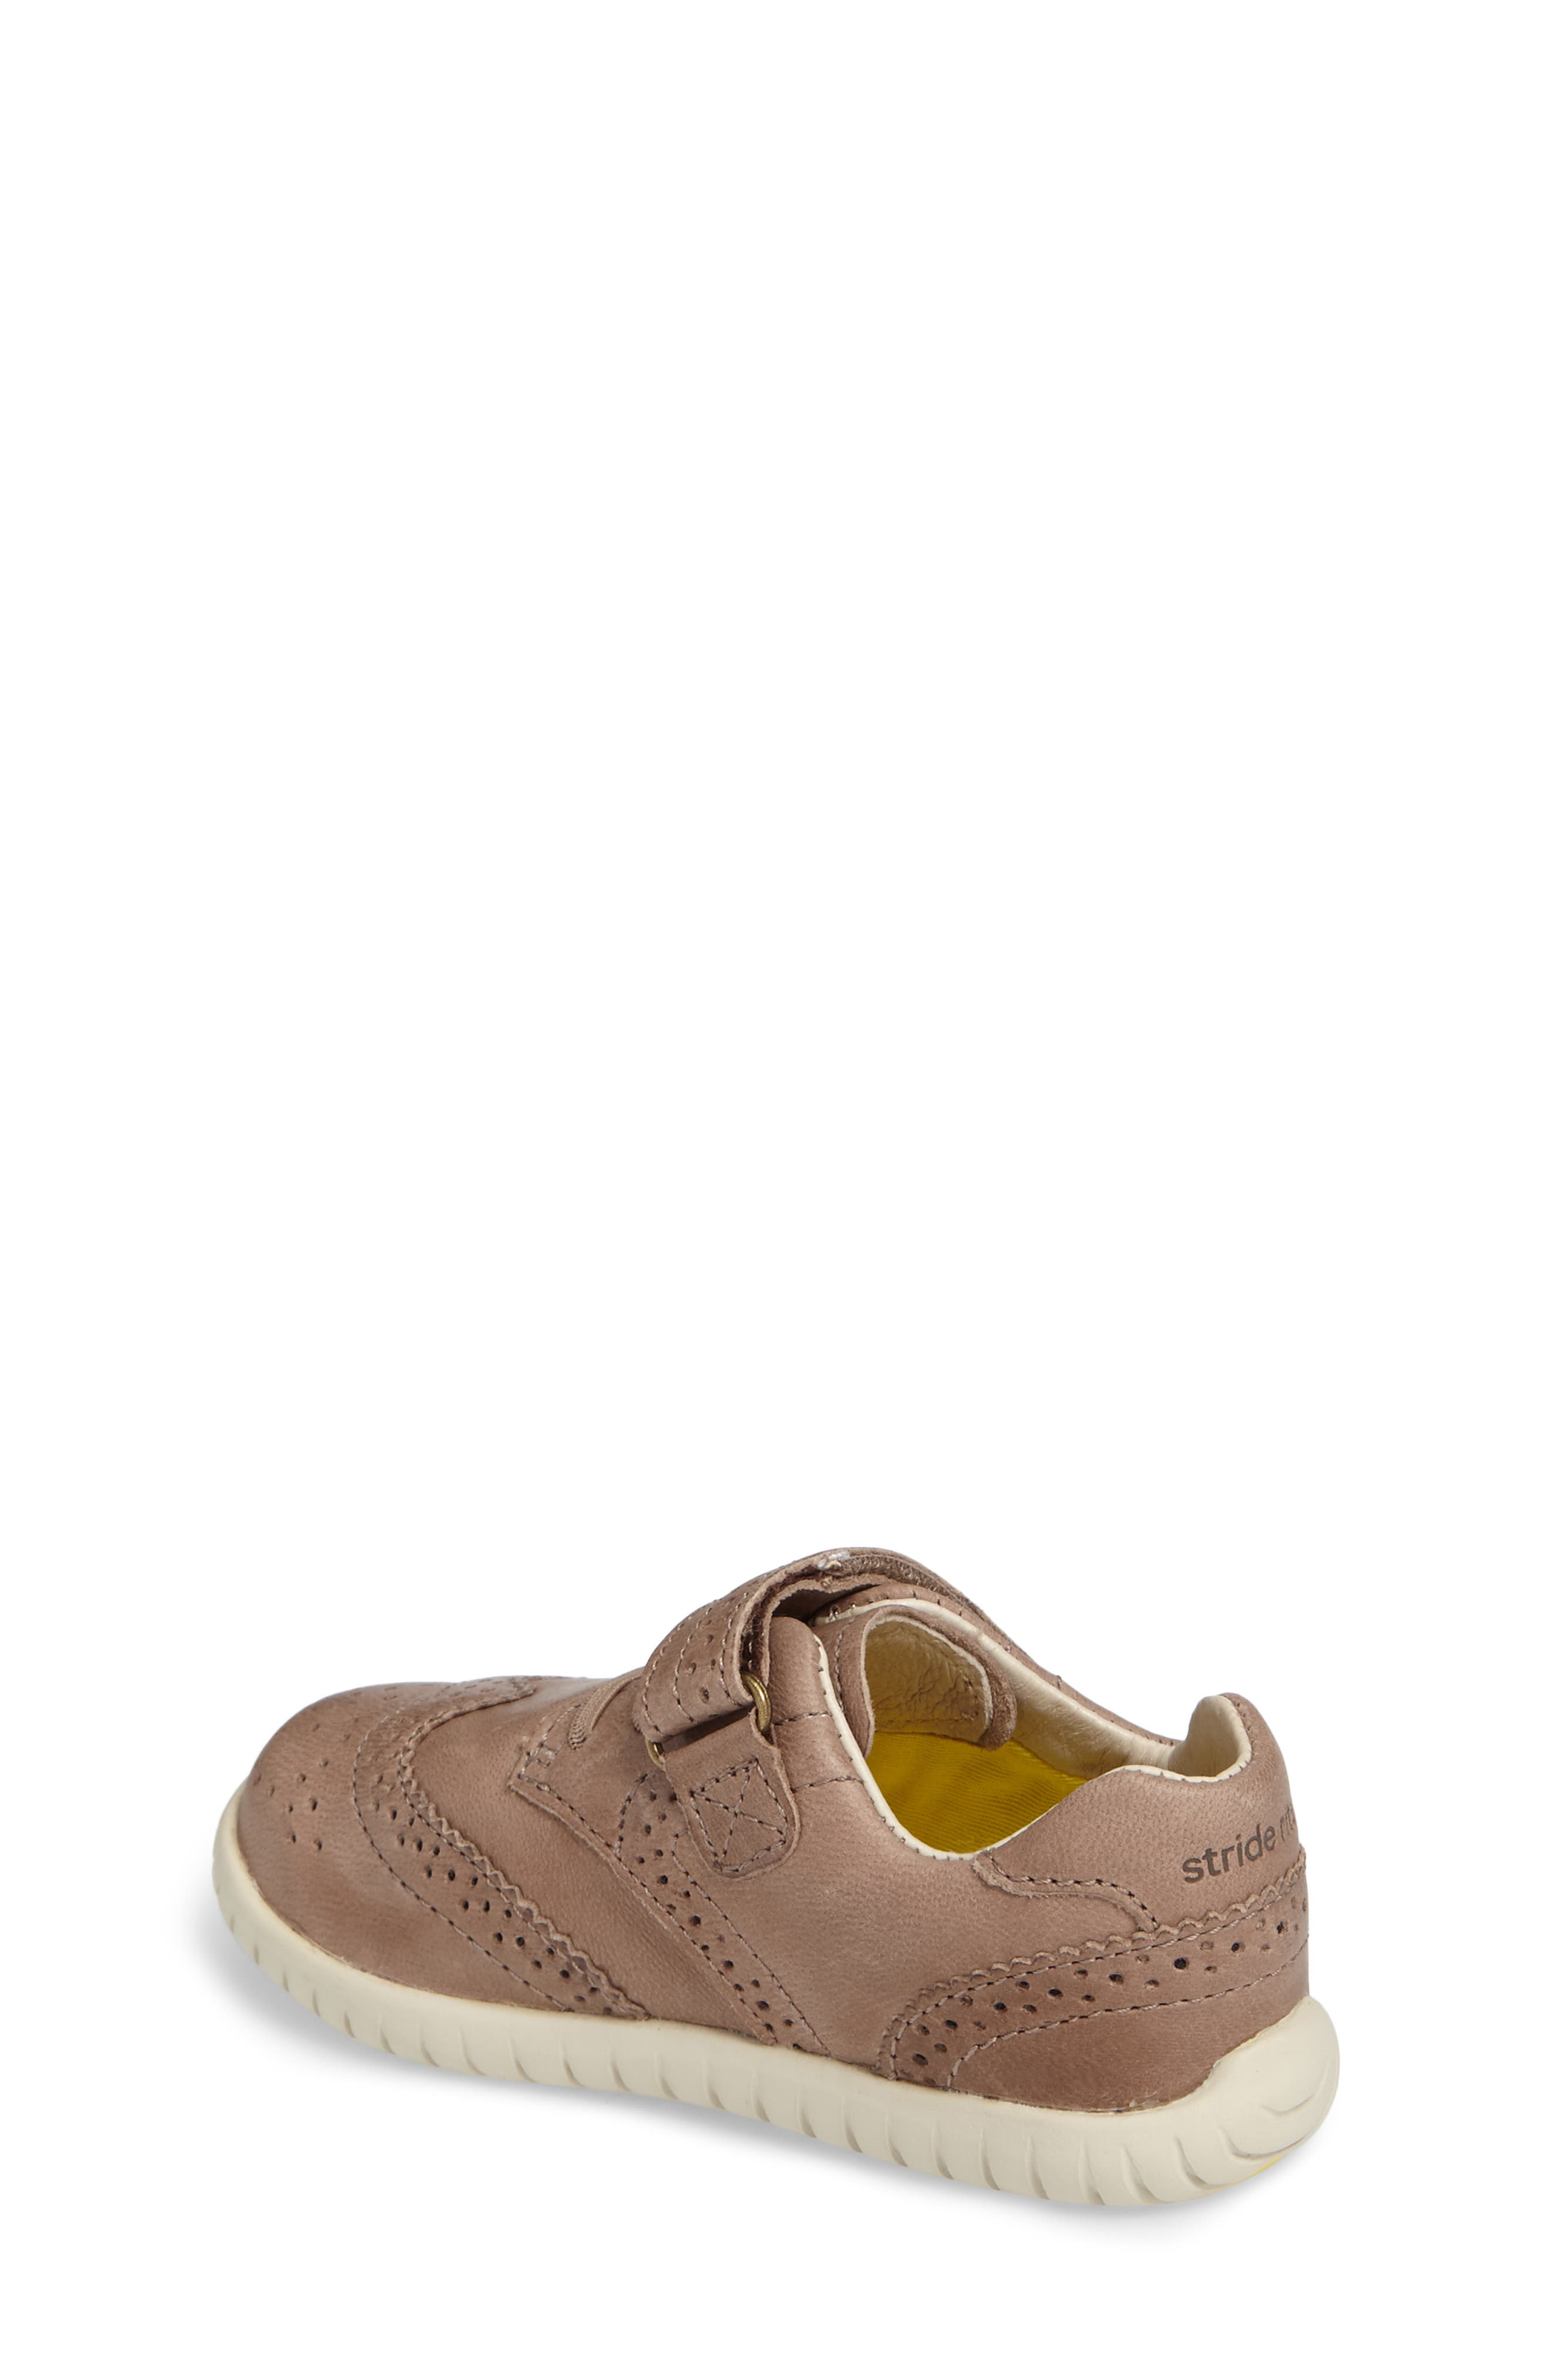 Alternate Image 2  - Stride Rite Addison Wingtip Sneaker (Baby, Walker & Toddler)